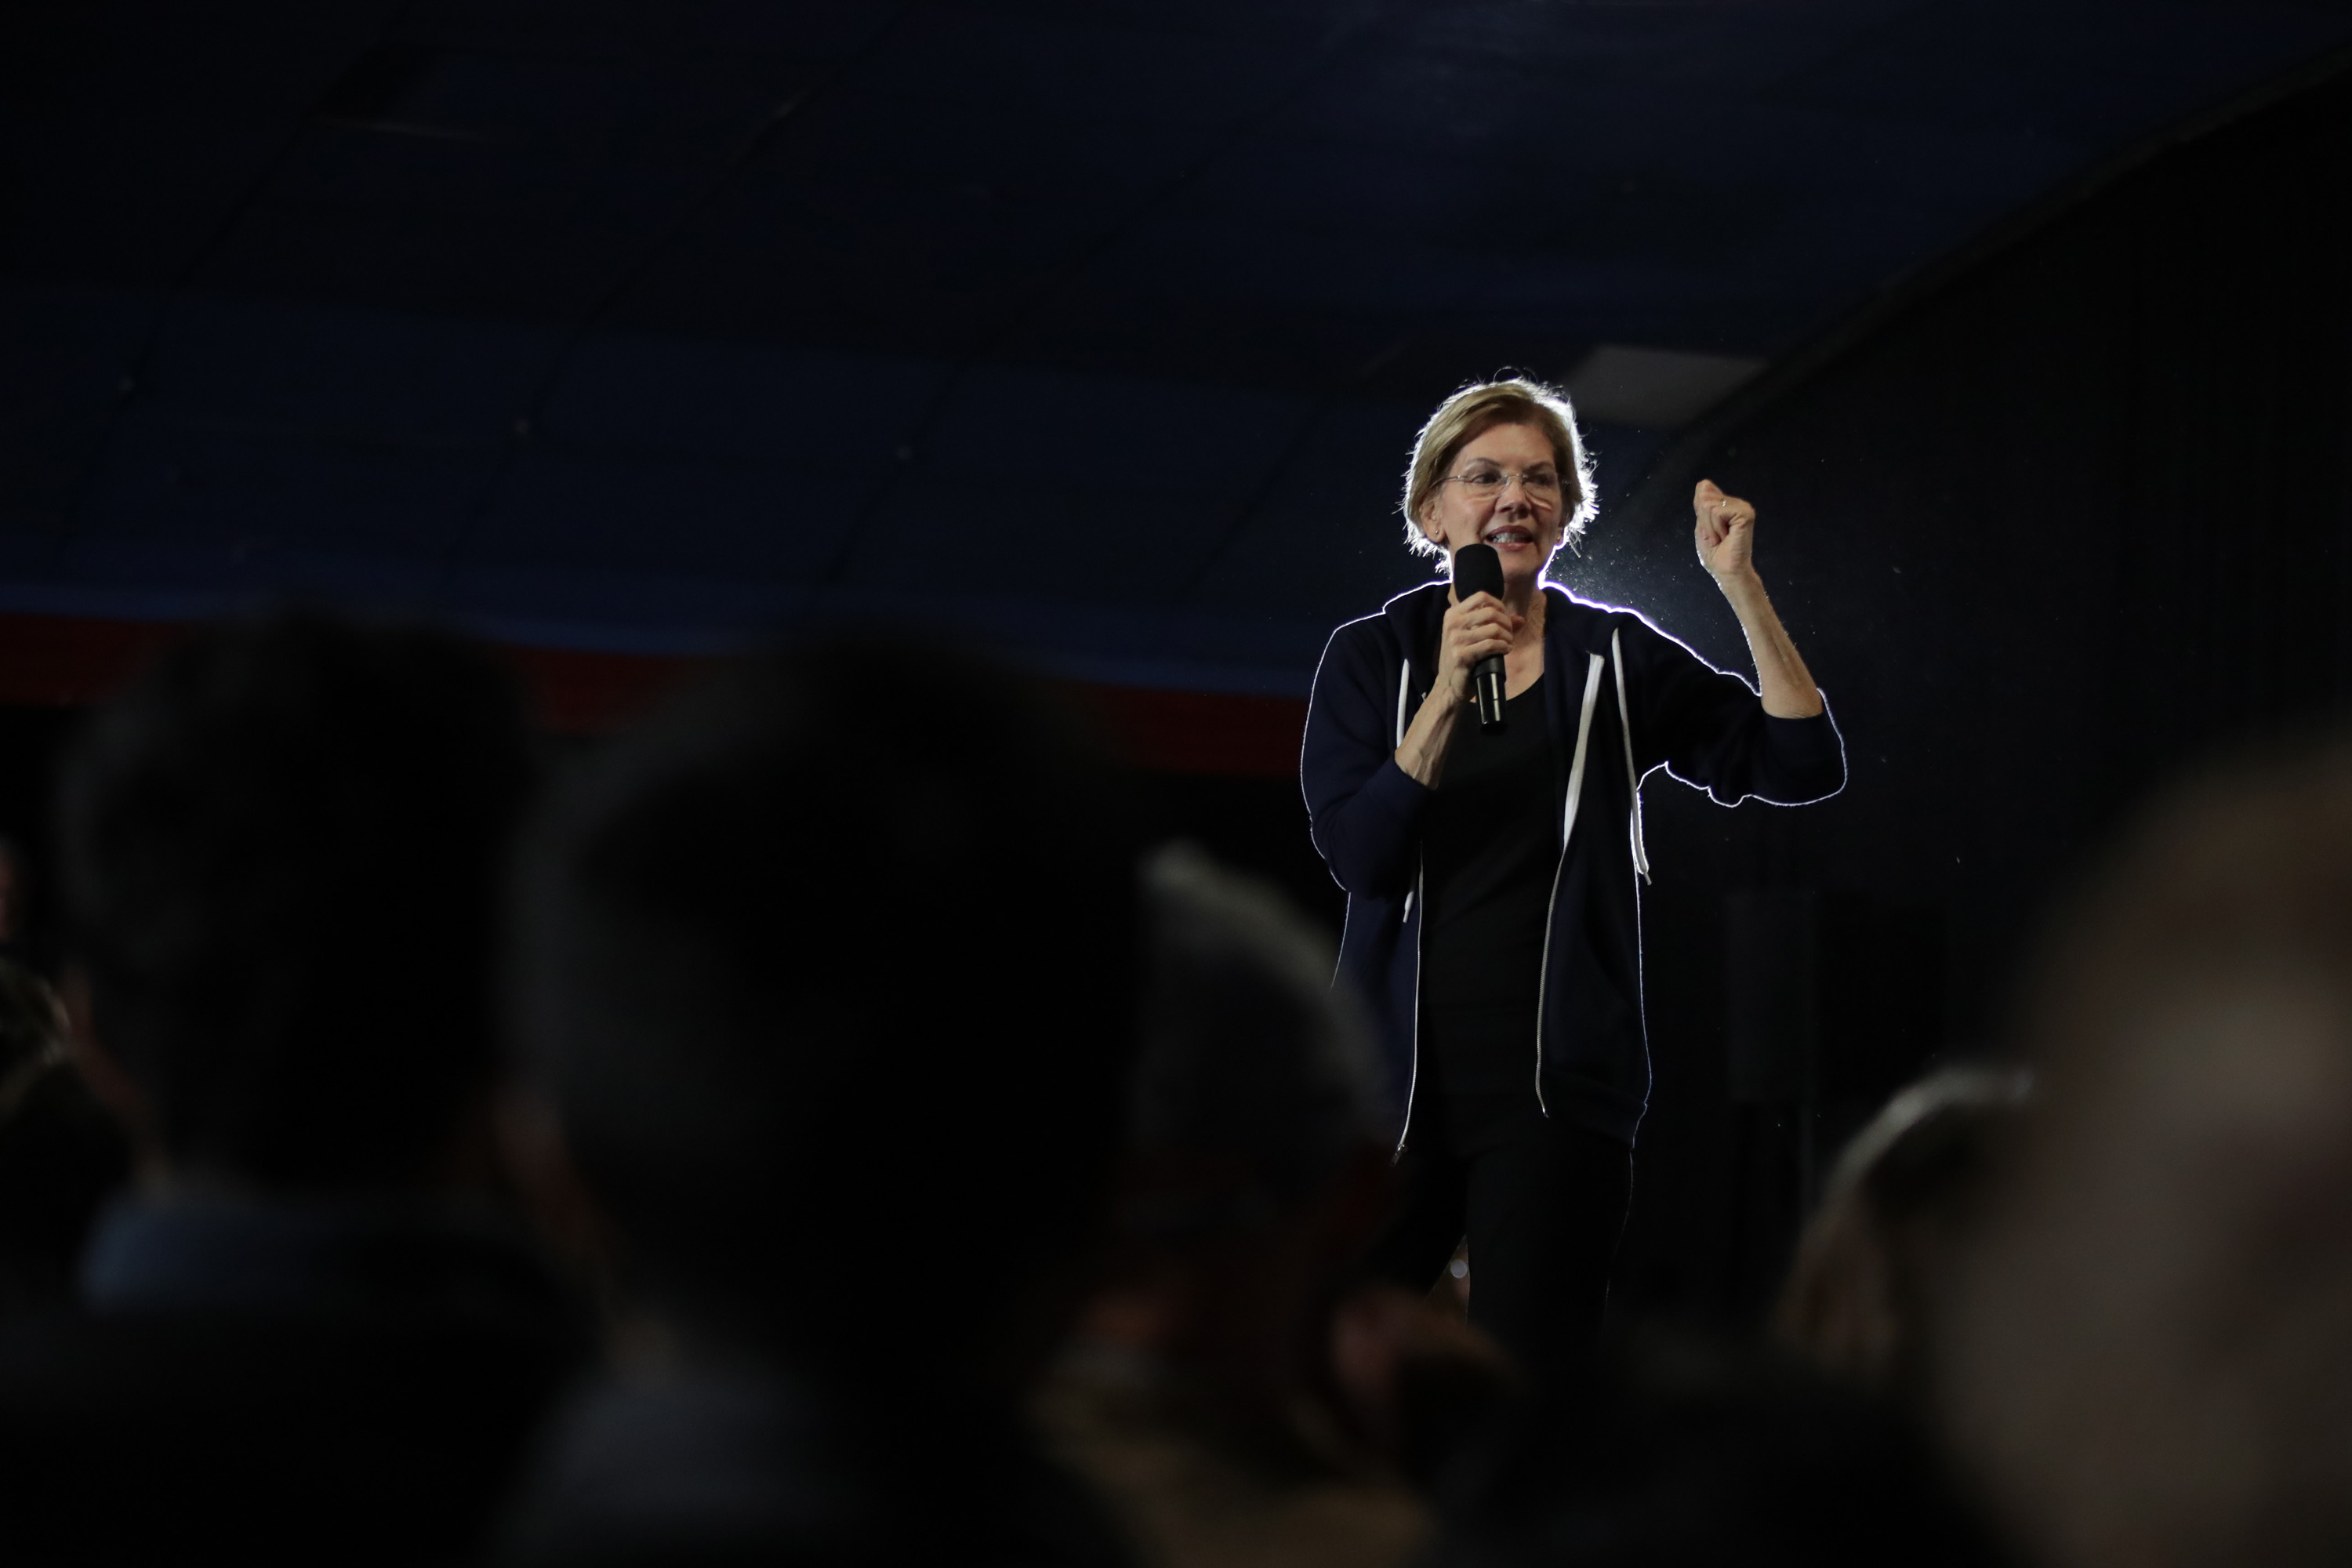 Elizabeth Warren on stage surrounded by a crowd at a campaign stop in Des Moines, Iowa in November 2019.